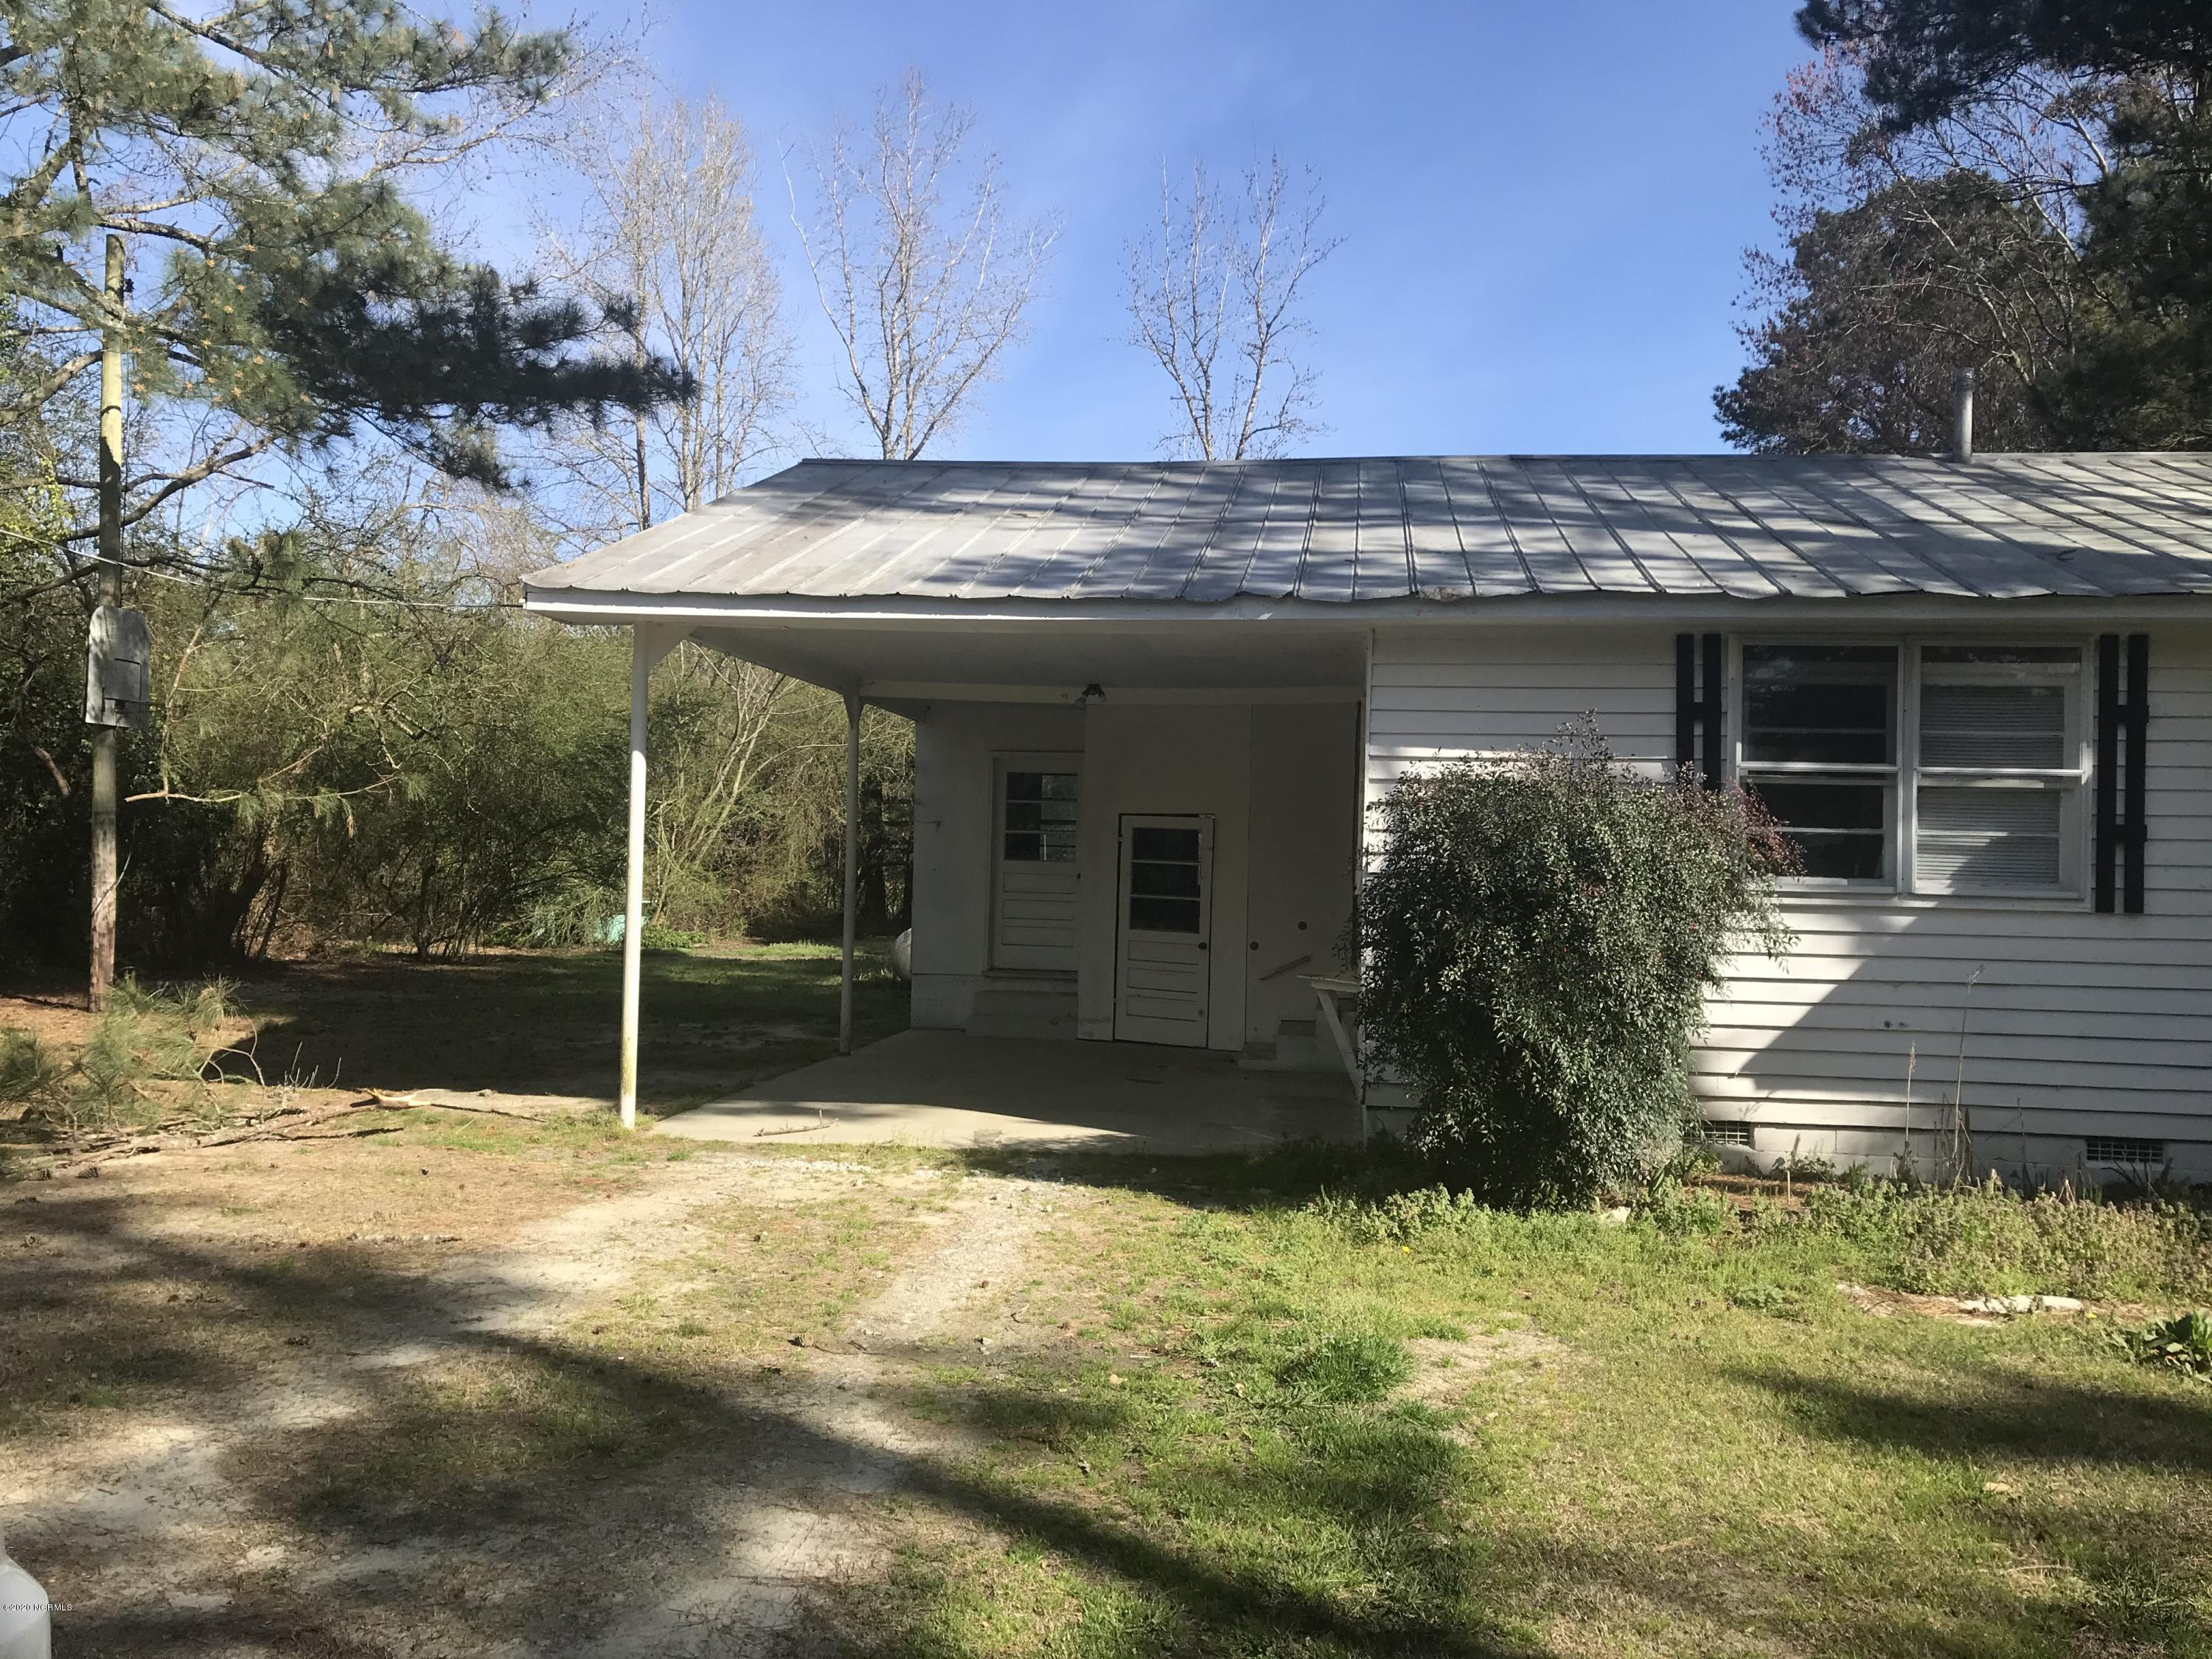 173 Nc 92, Washington, North Carolina 27889, 3 Bedrooms Bedrooms, 6 Rooms Rooms,1 BathroomBathrooms,Single family residence,For sale,Nc 92,100209342